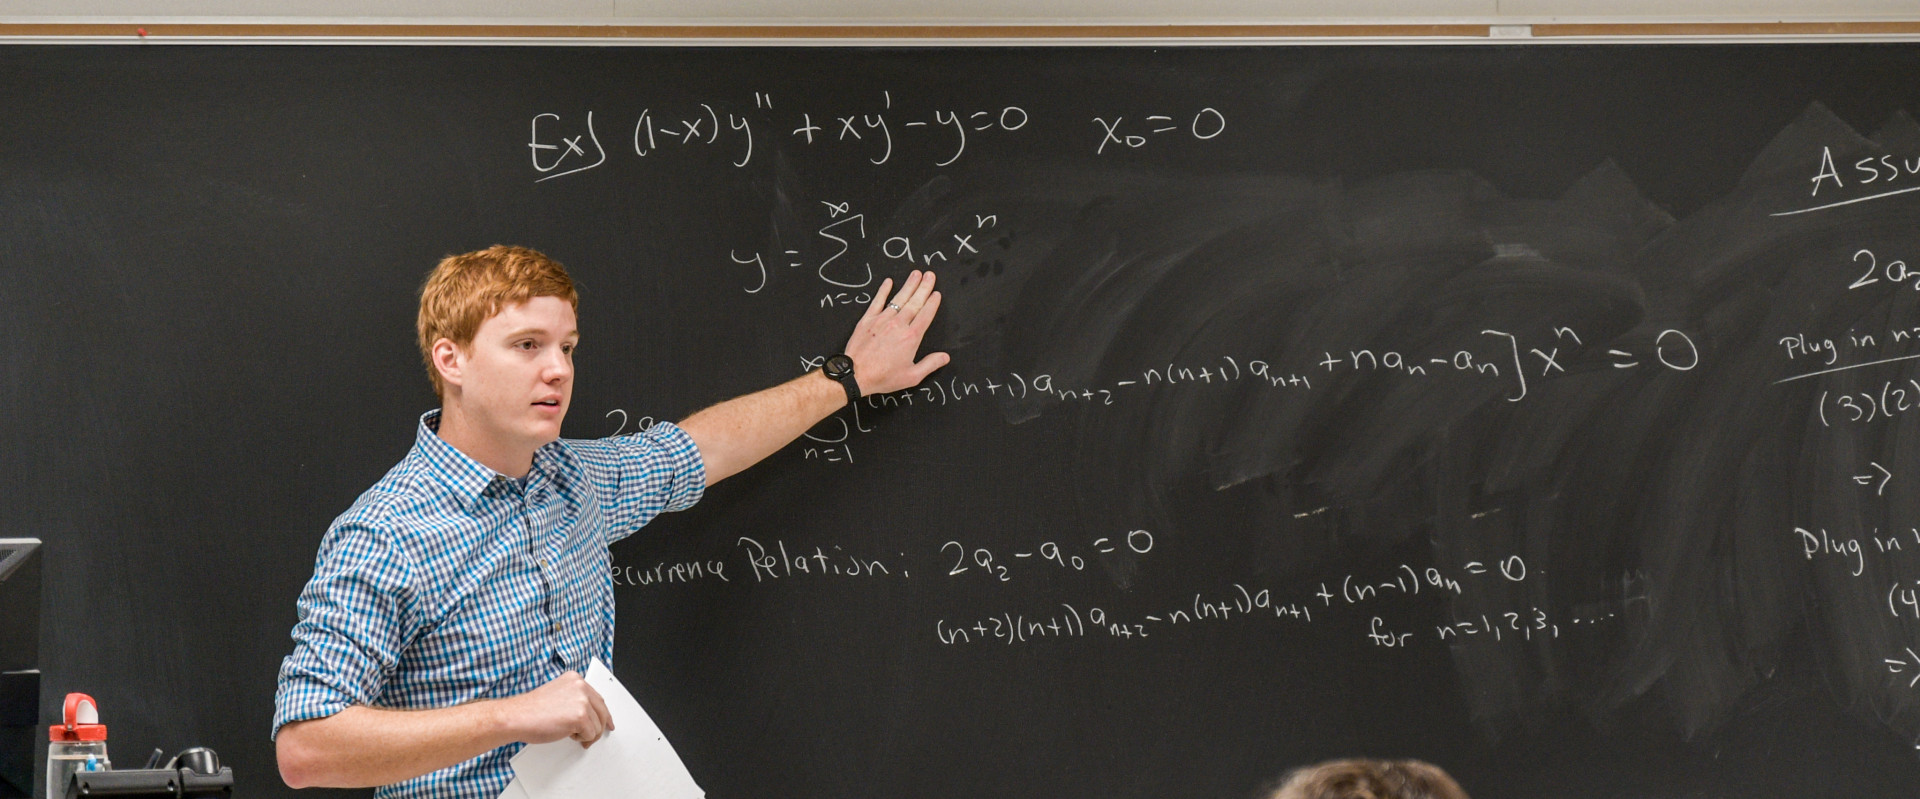 Professor teaching